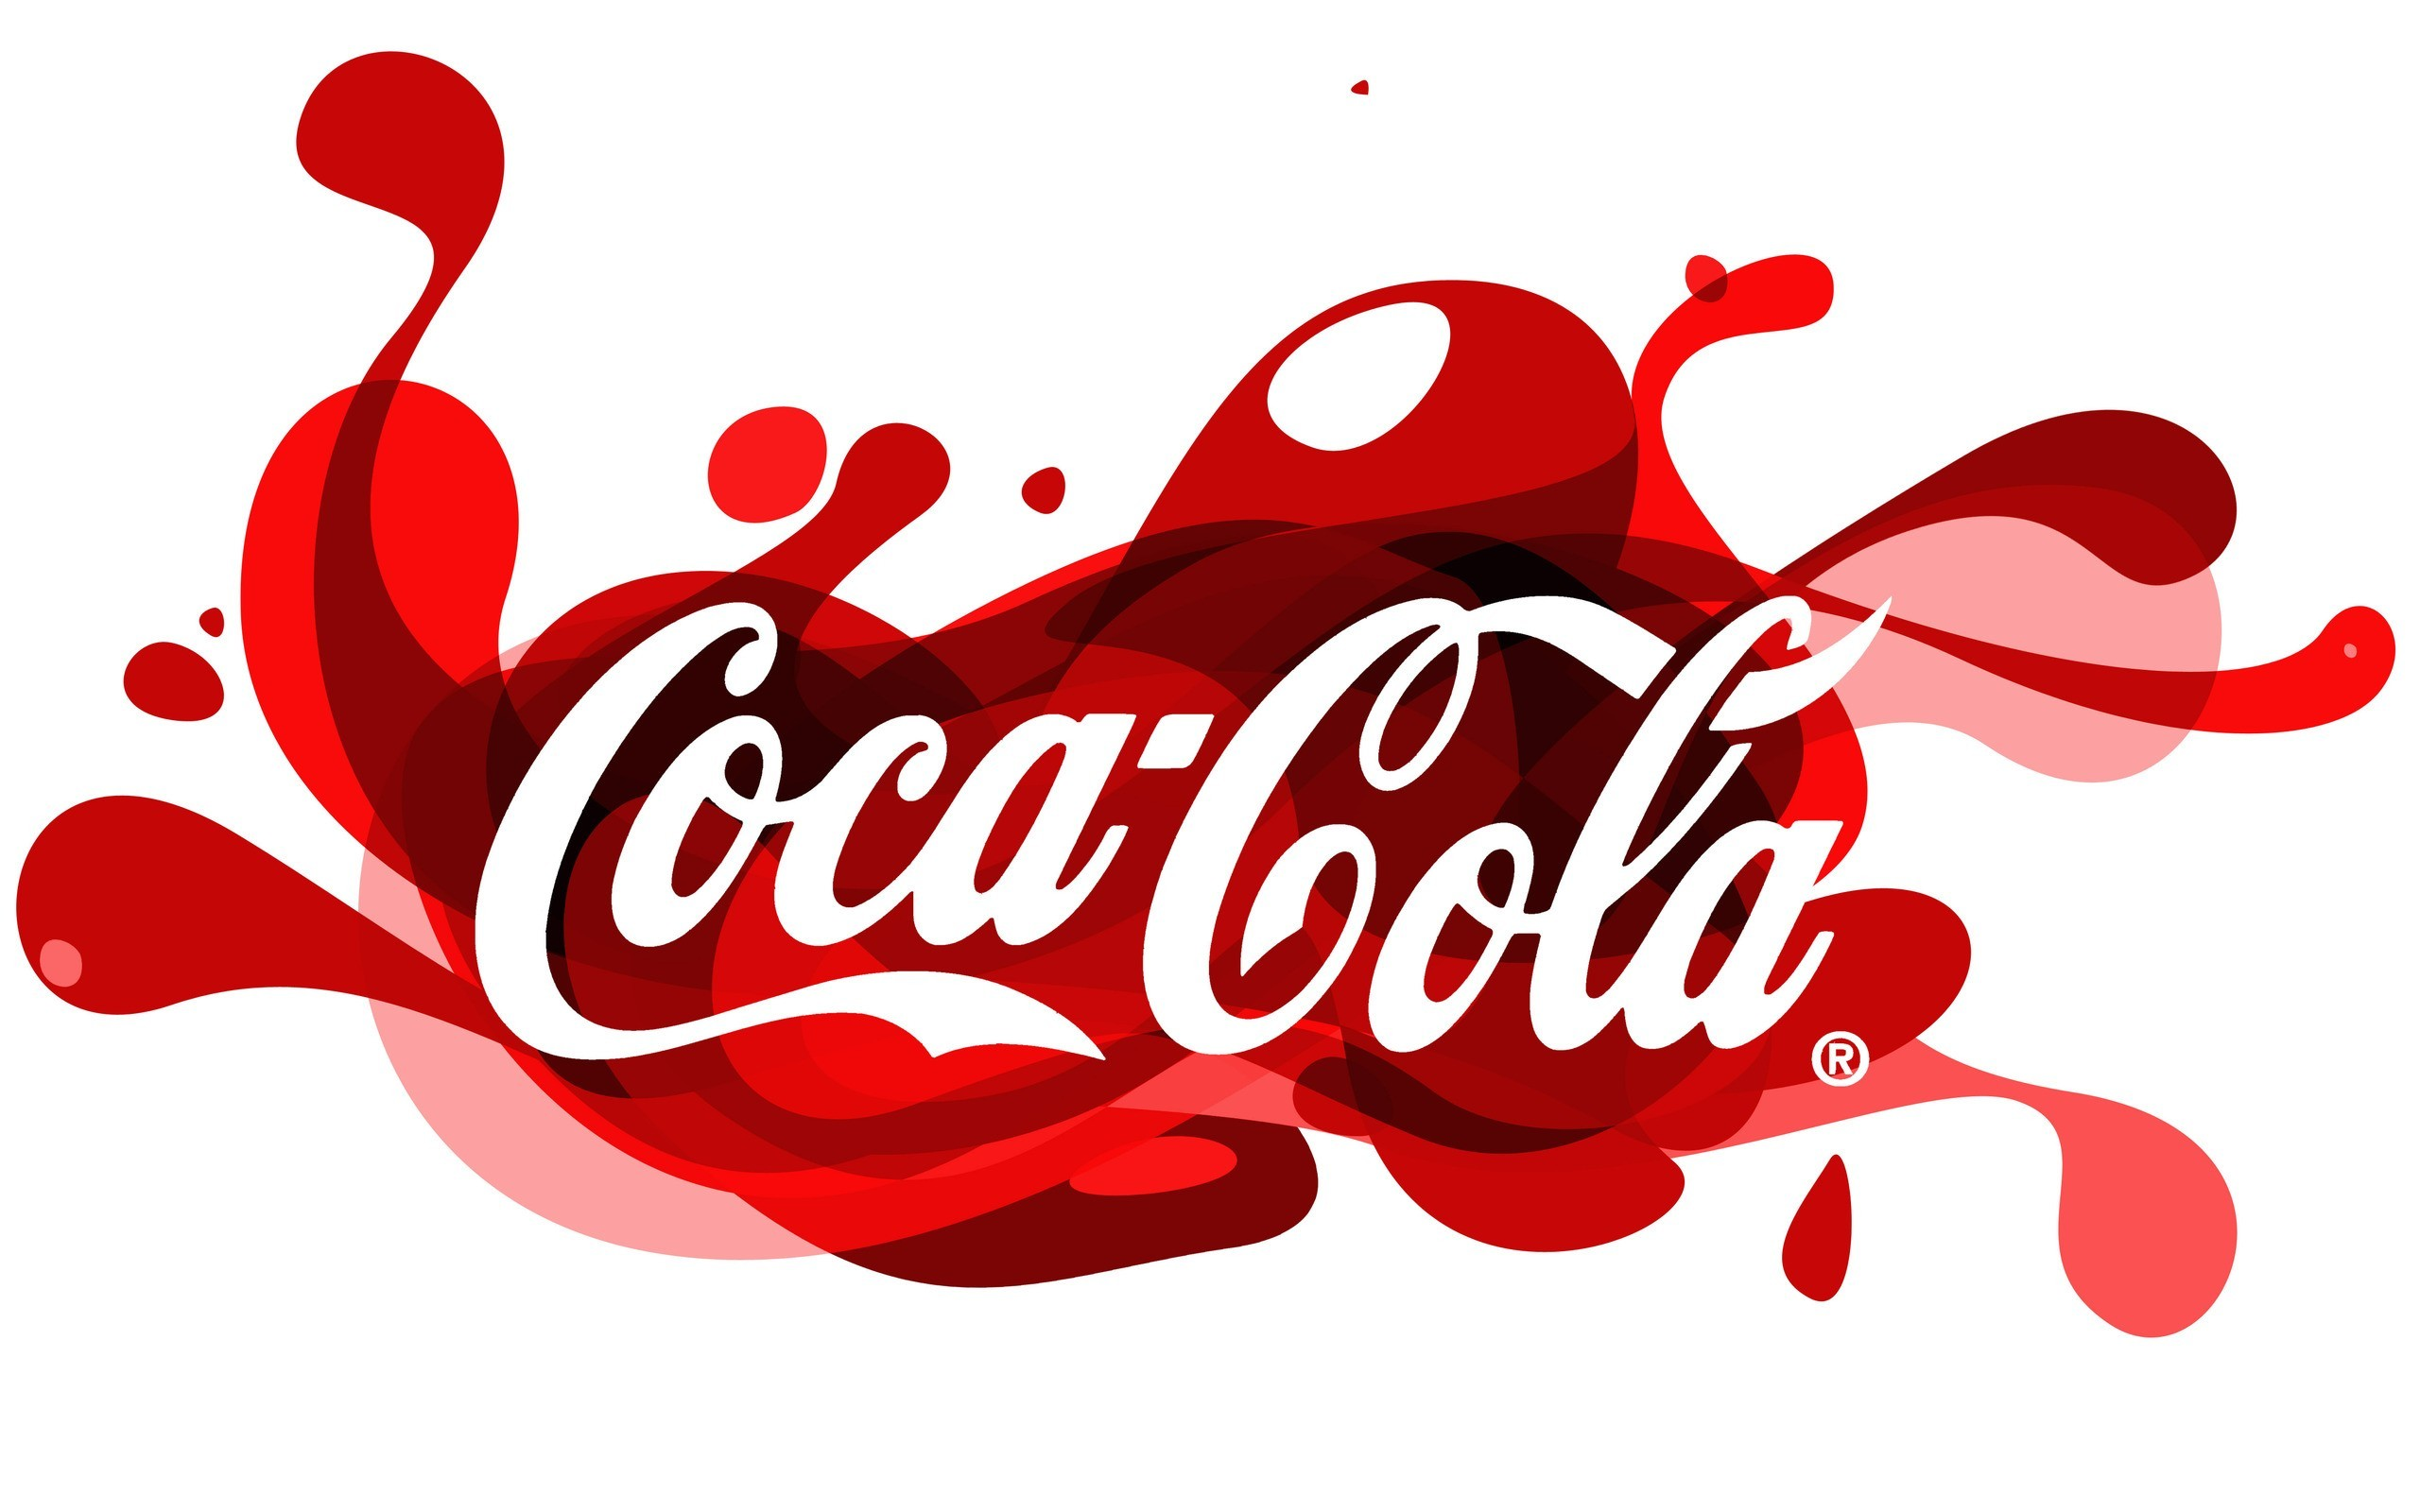 coca-cola logos white background HD Wallpaper